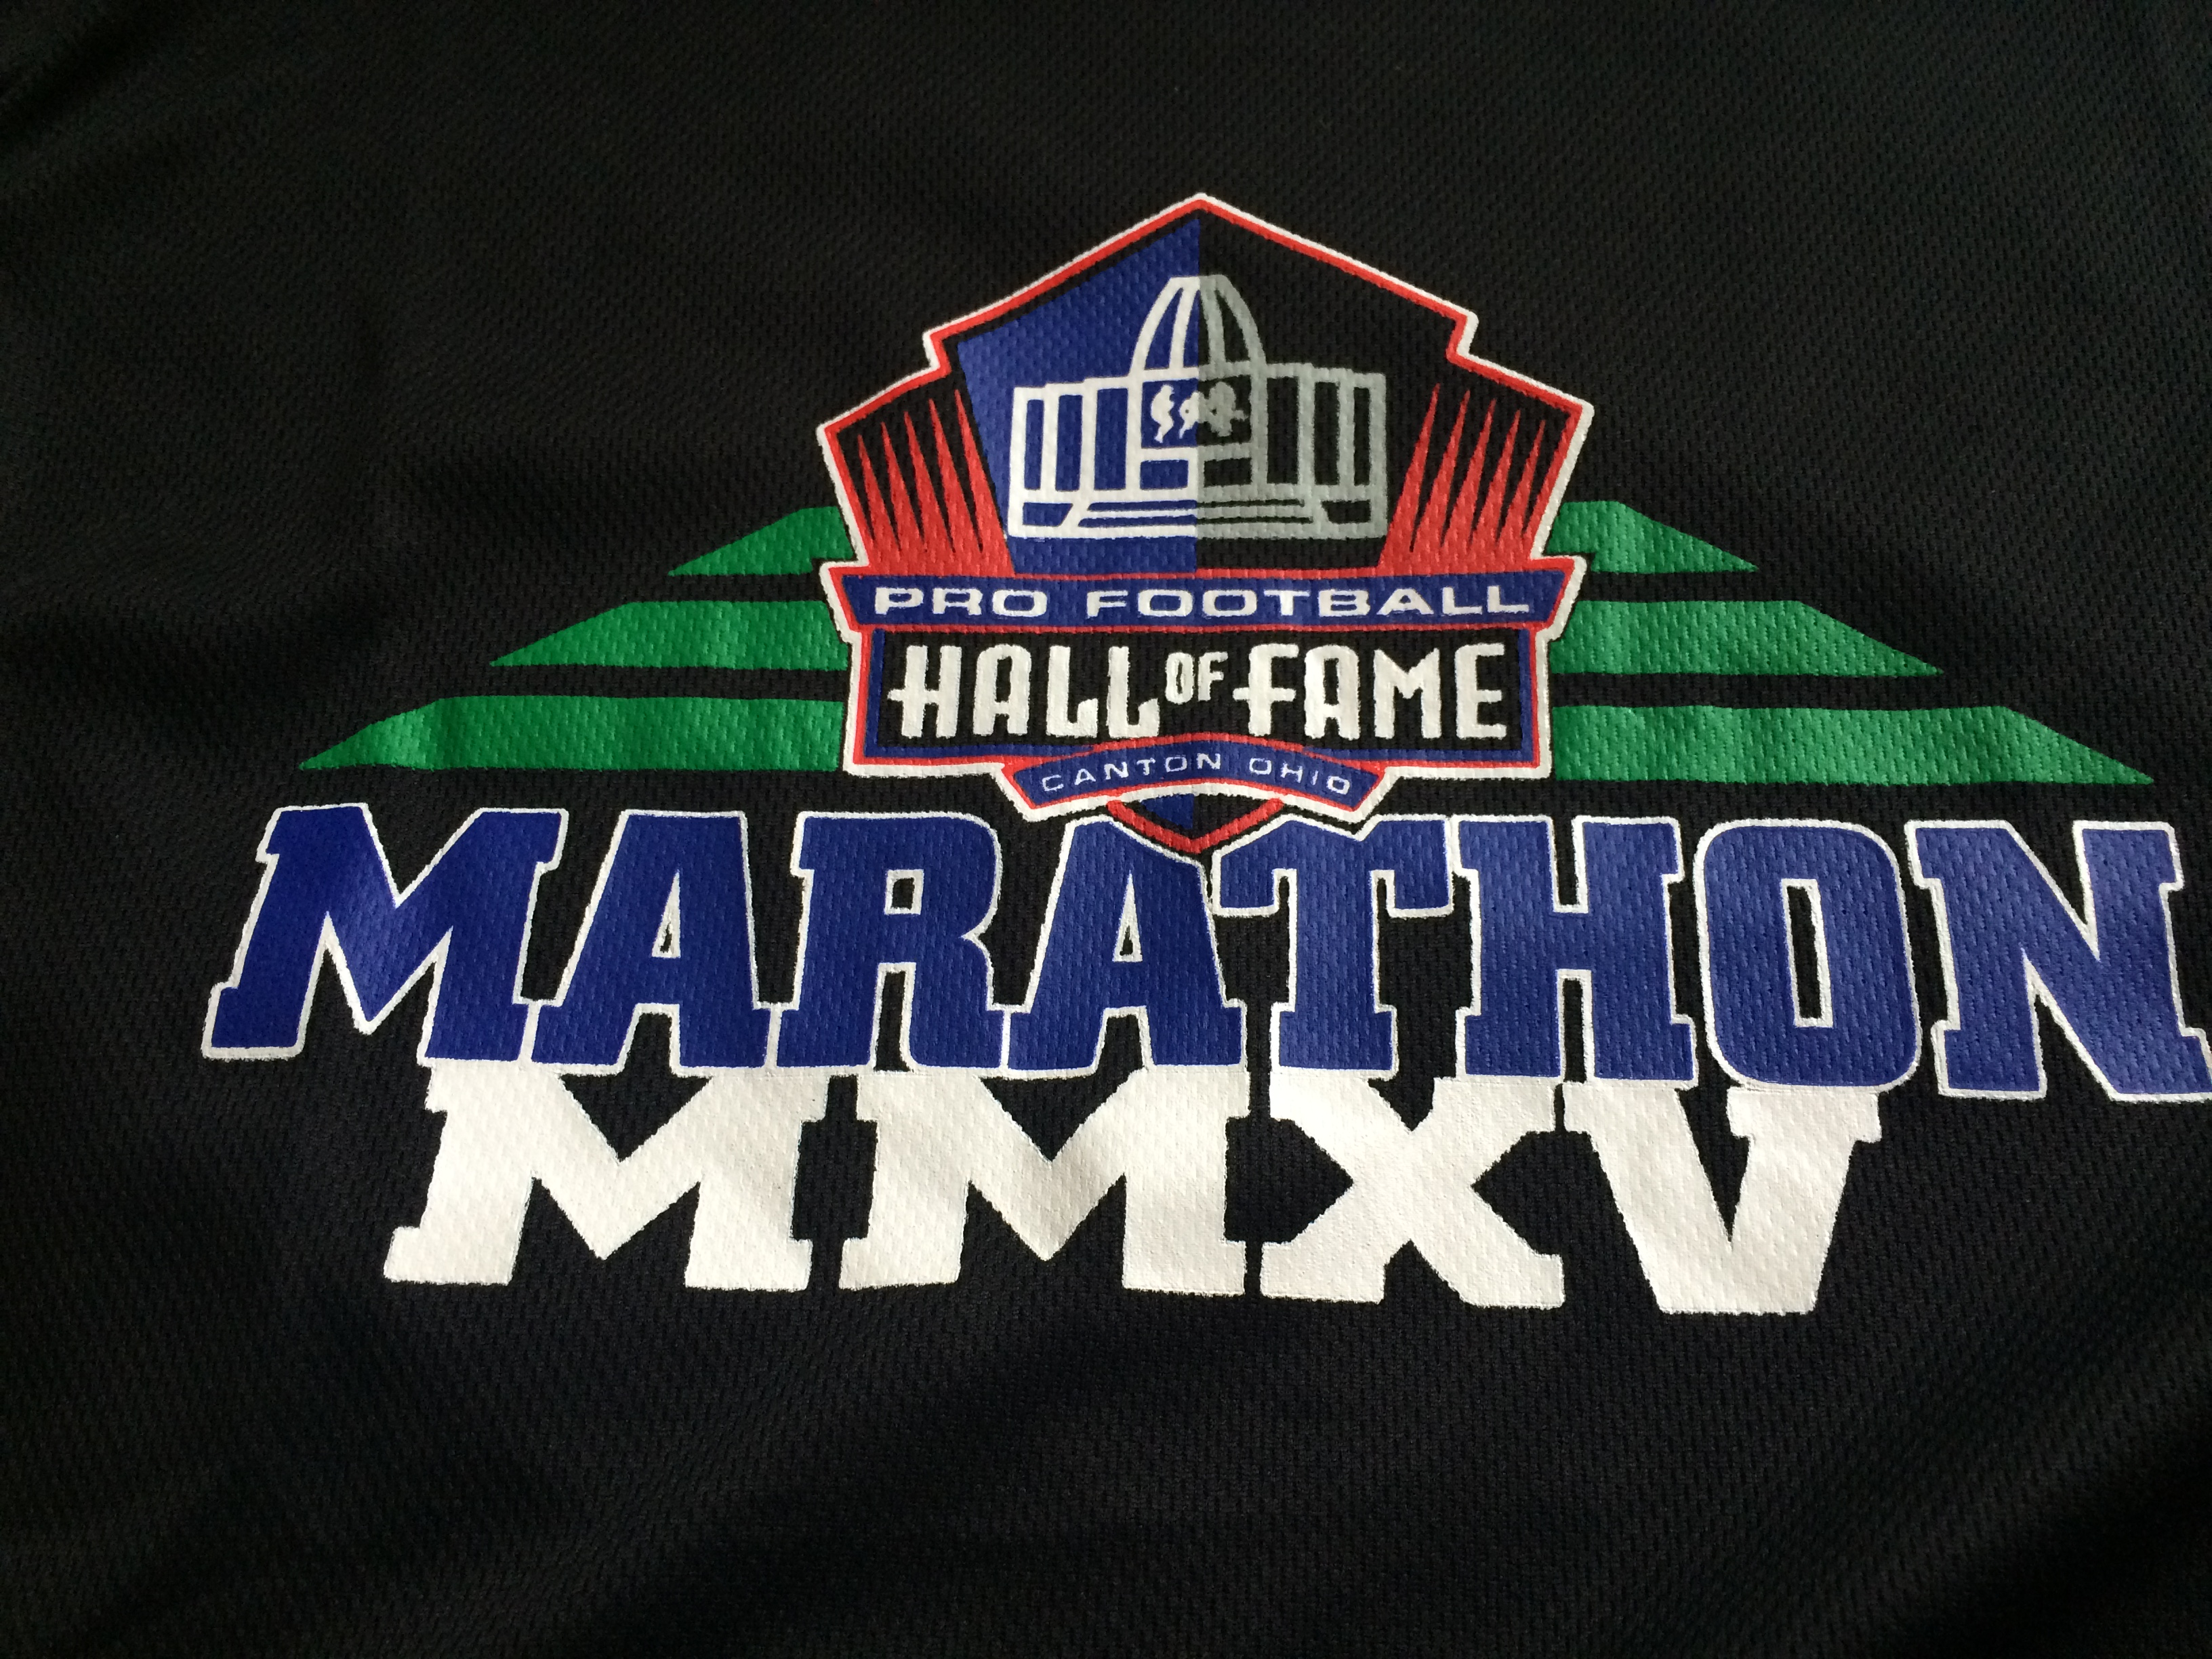 Hall of Fame Half Marathon